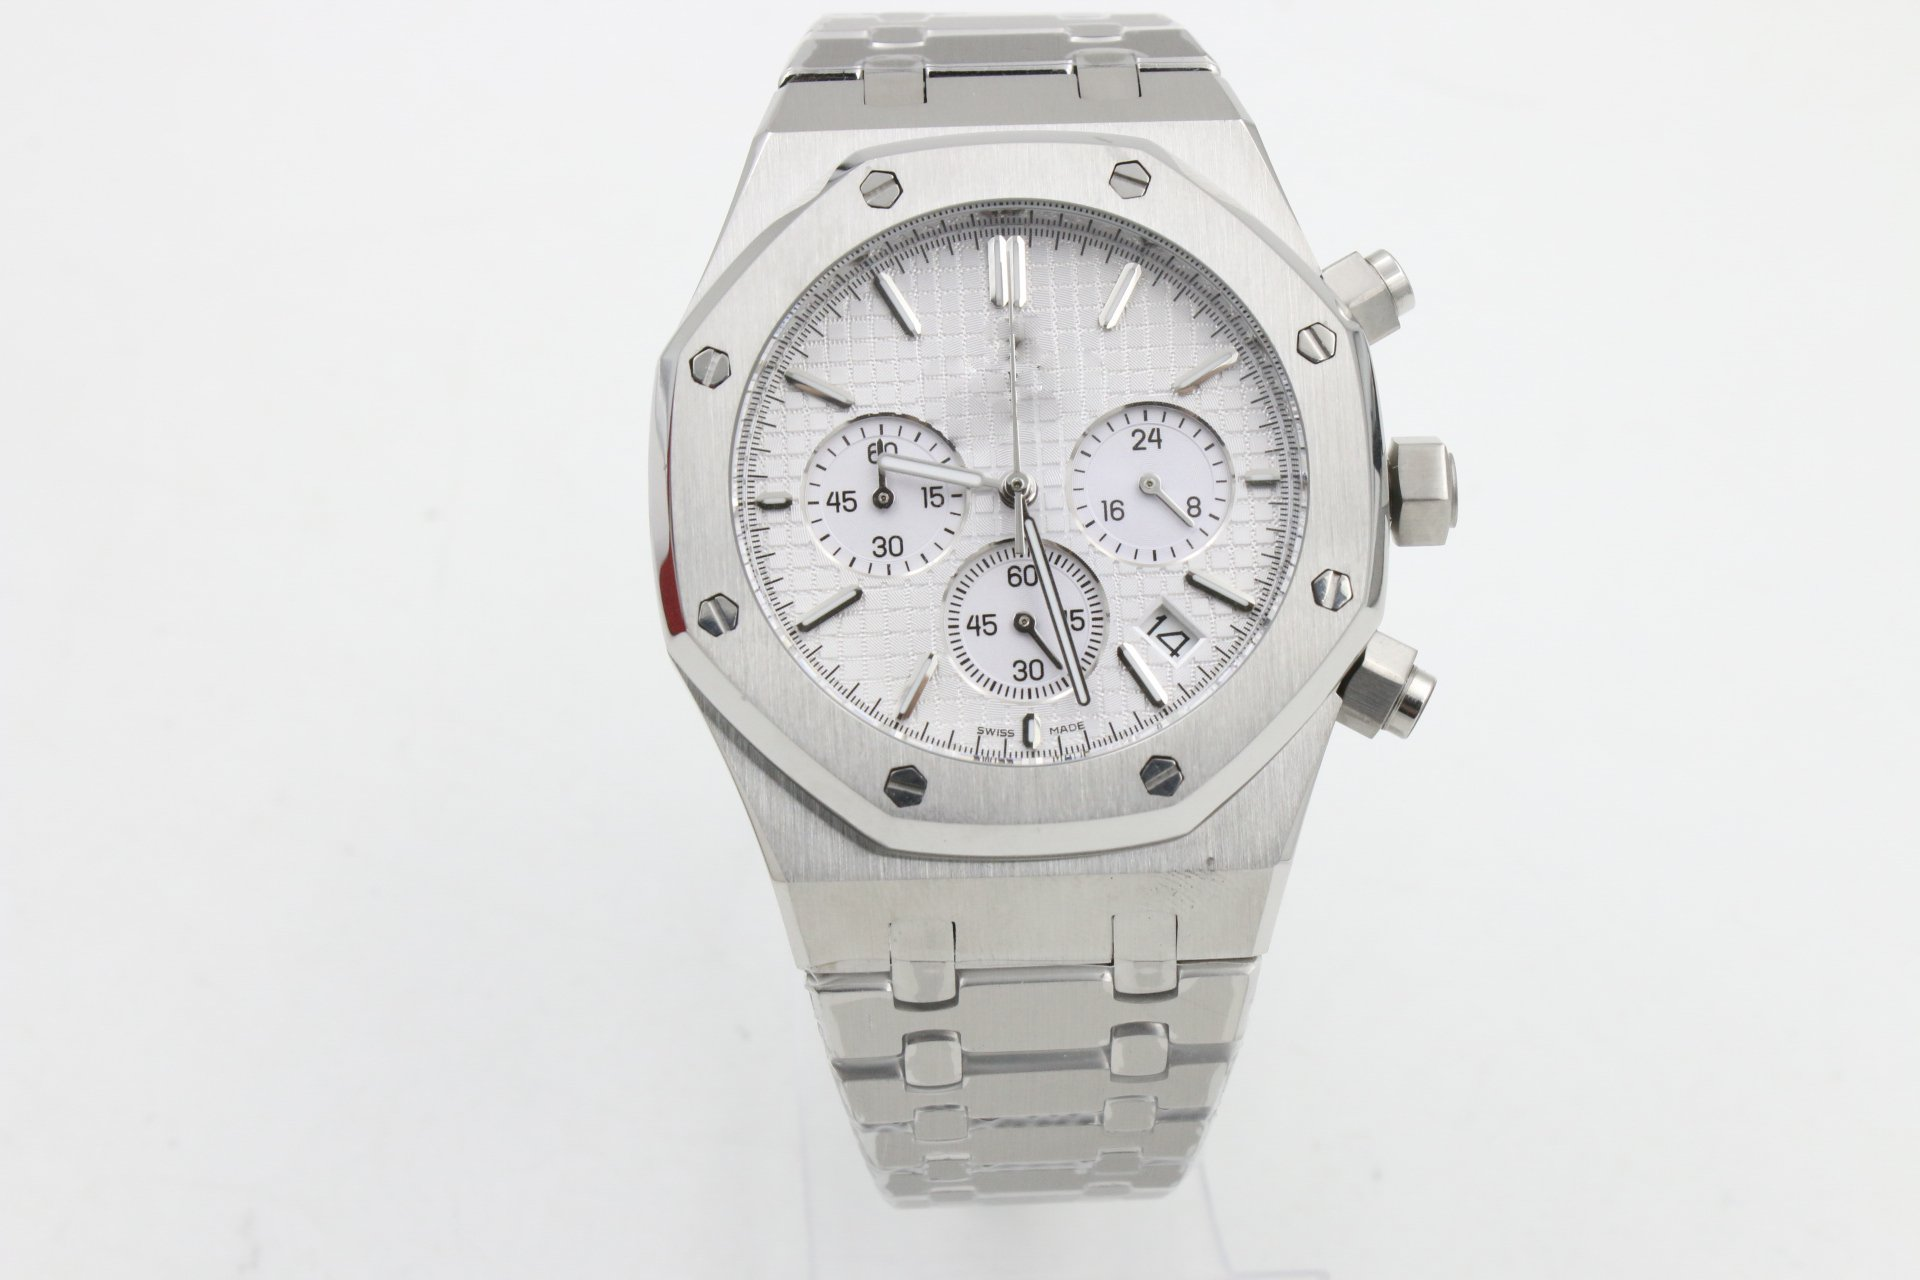 My_TimeZone Luxury Brand Top quality Japanese quartz chronograph silver color watch watches